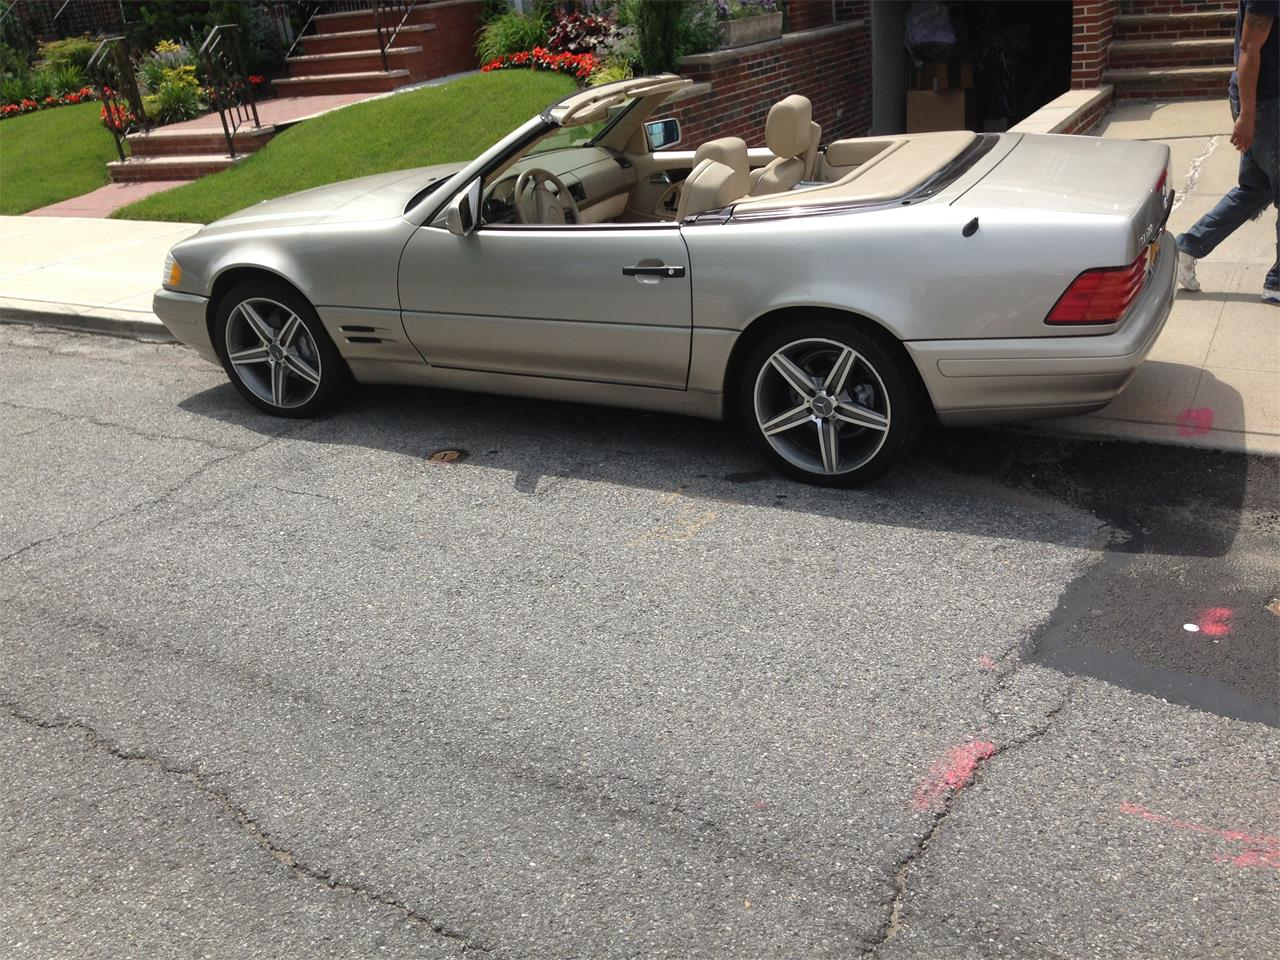 Large Picture of 1998 Mercedes-Benz SL500 - $7,900.00 Offered by a Private Seller - EYIB